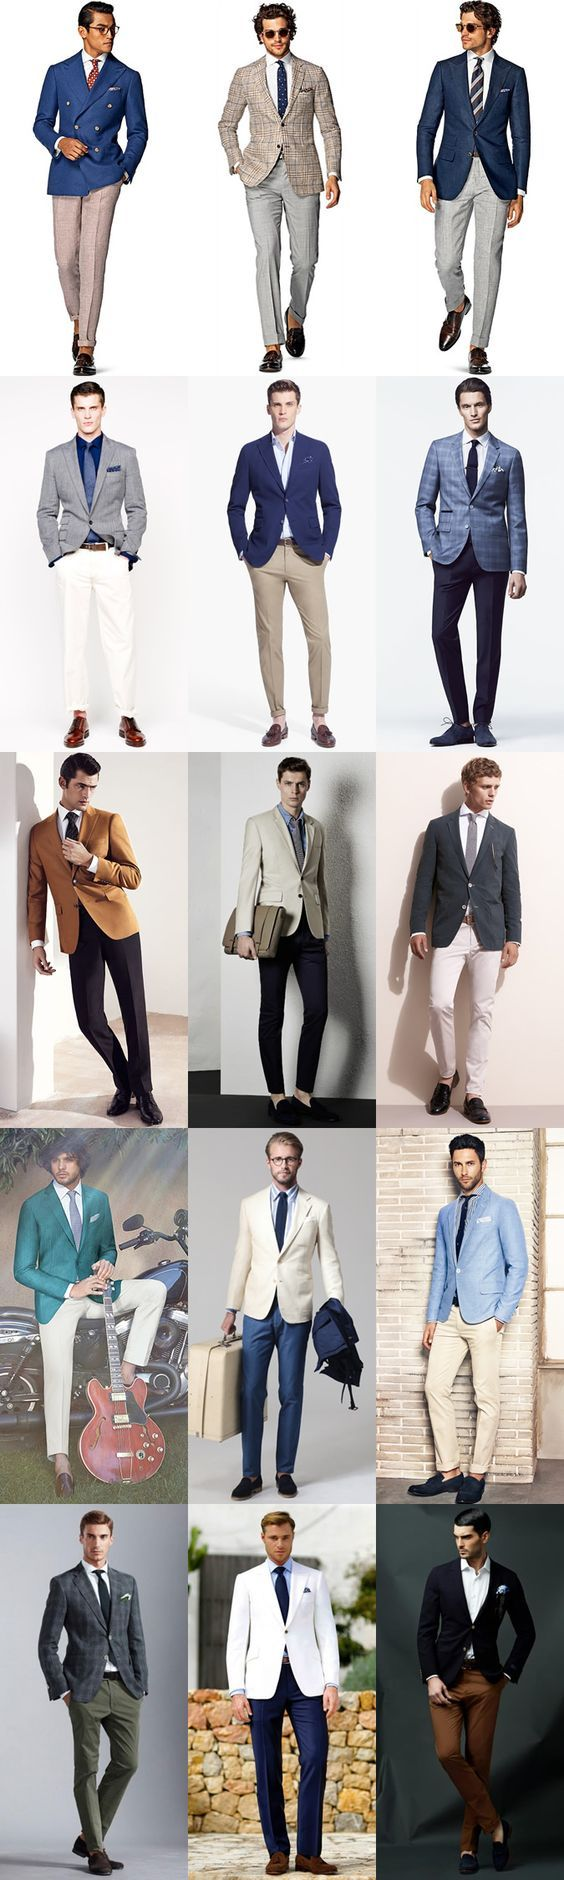 Men's Summer Weddings Smart-Casual Separates Outfit Inspiration Lookbook…